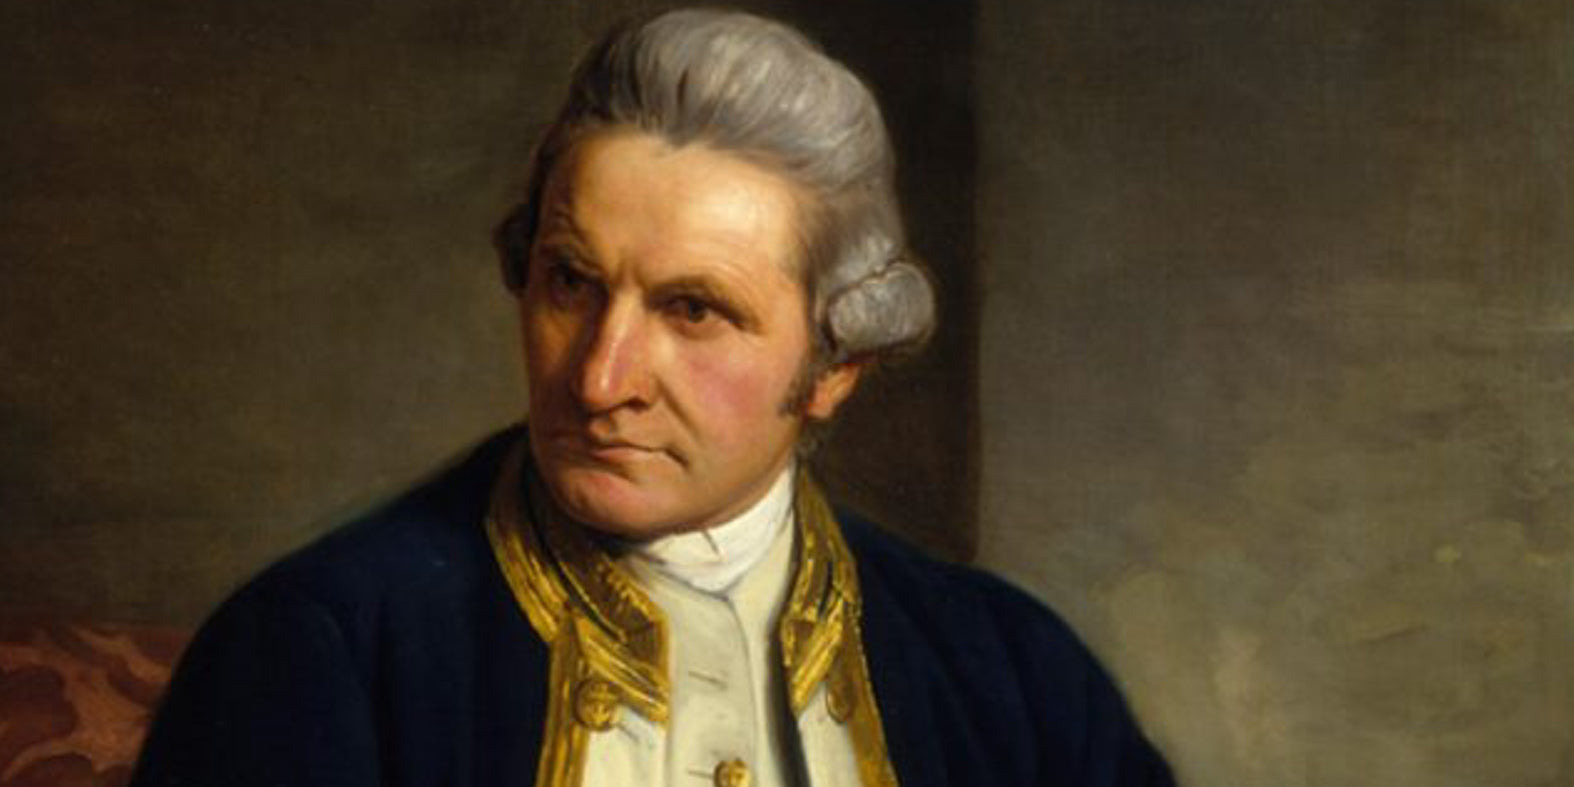 Captain James Cook: from Whitby to the Southern Hemisphere